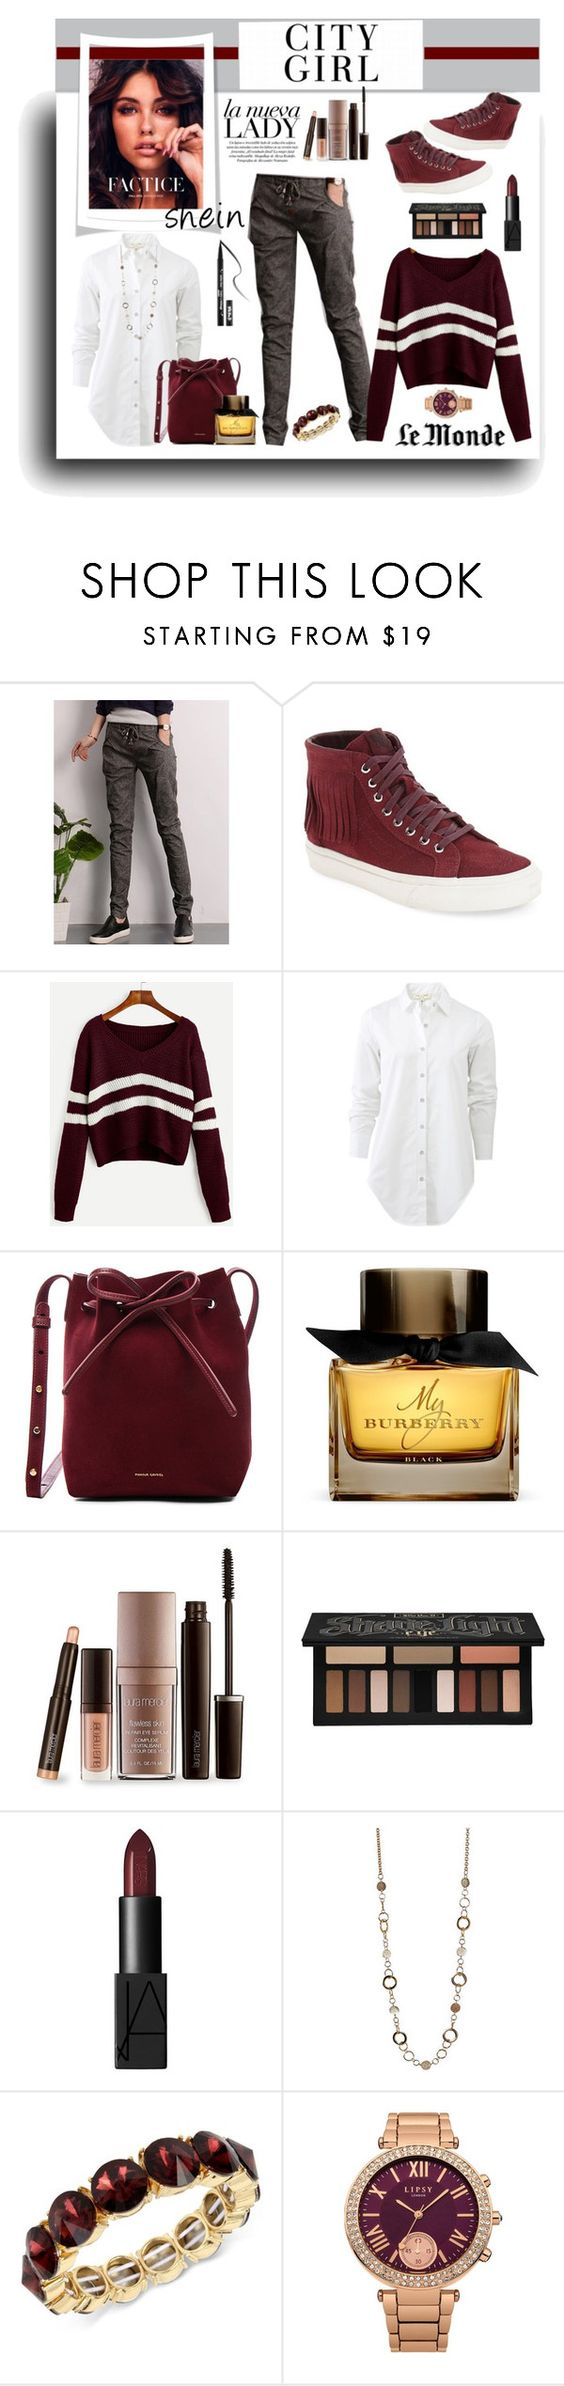 """""""Shein Sweater Contest"""" by lyric0ne ❤ liked on Polyvore featuring Vans, rag & bone, Mansur Gavriel, Burberry, Laura Mercier, Kat Von D, NARS Cosmetics, Kenneth Cole and Lipsy"""